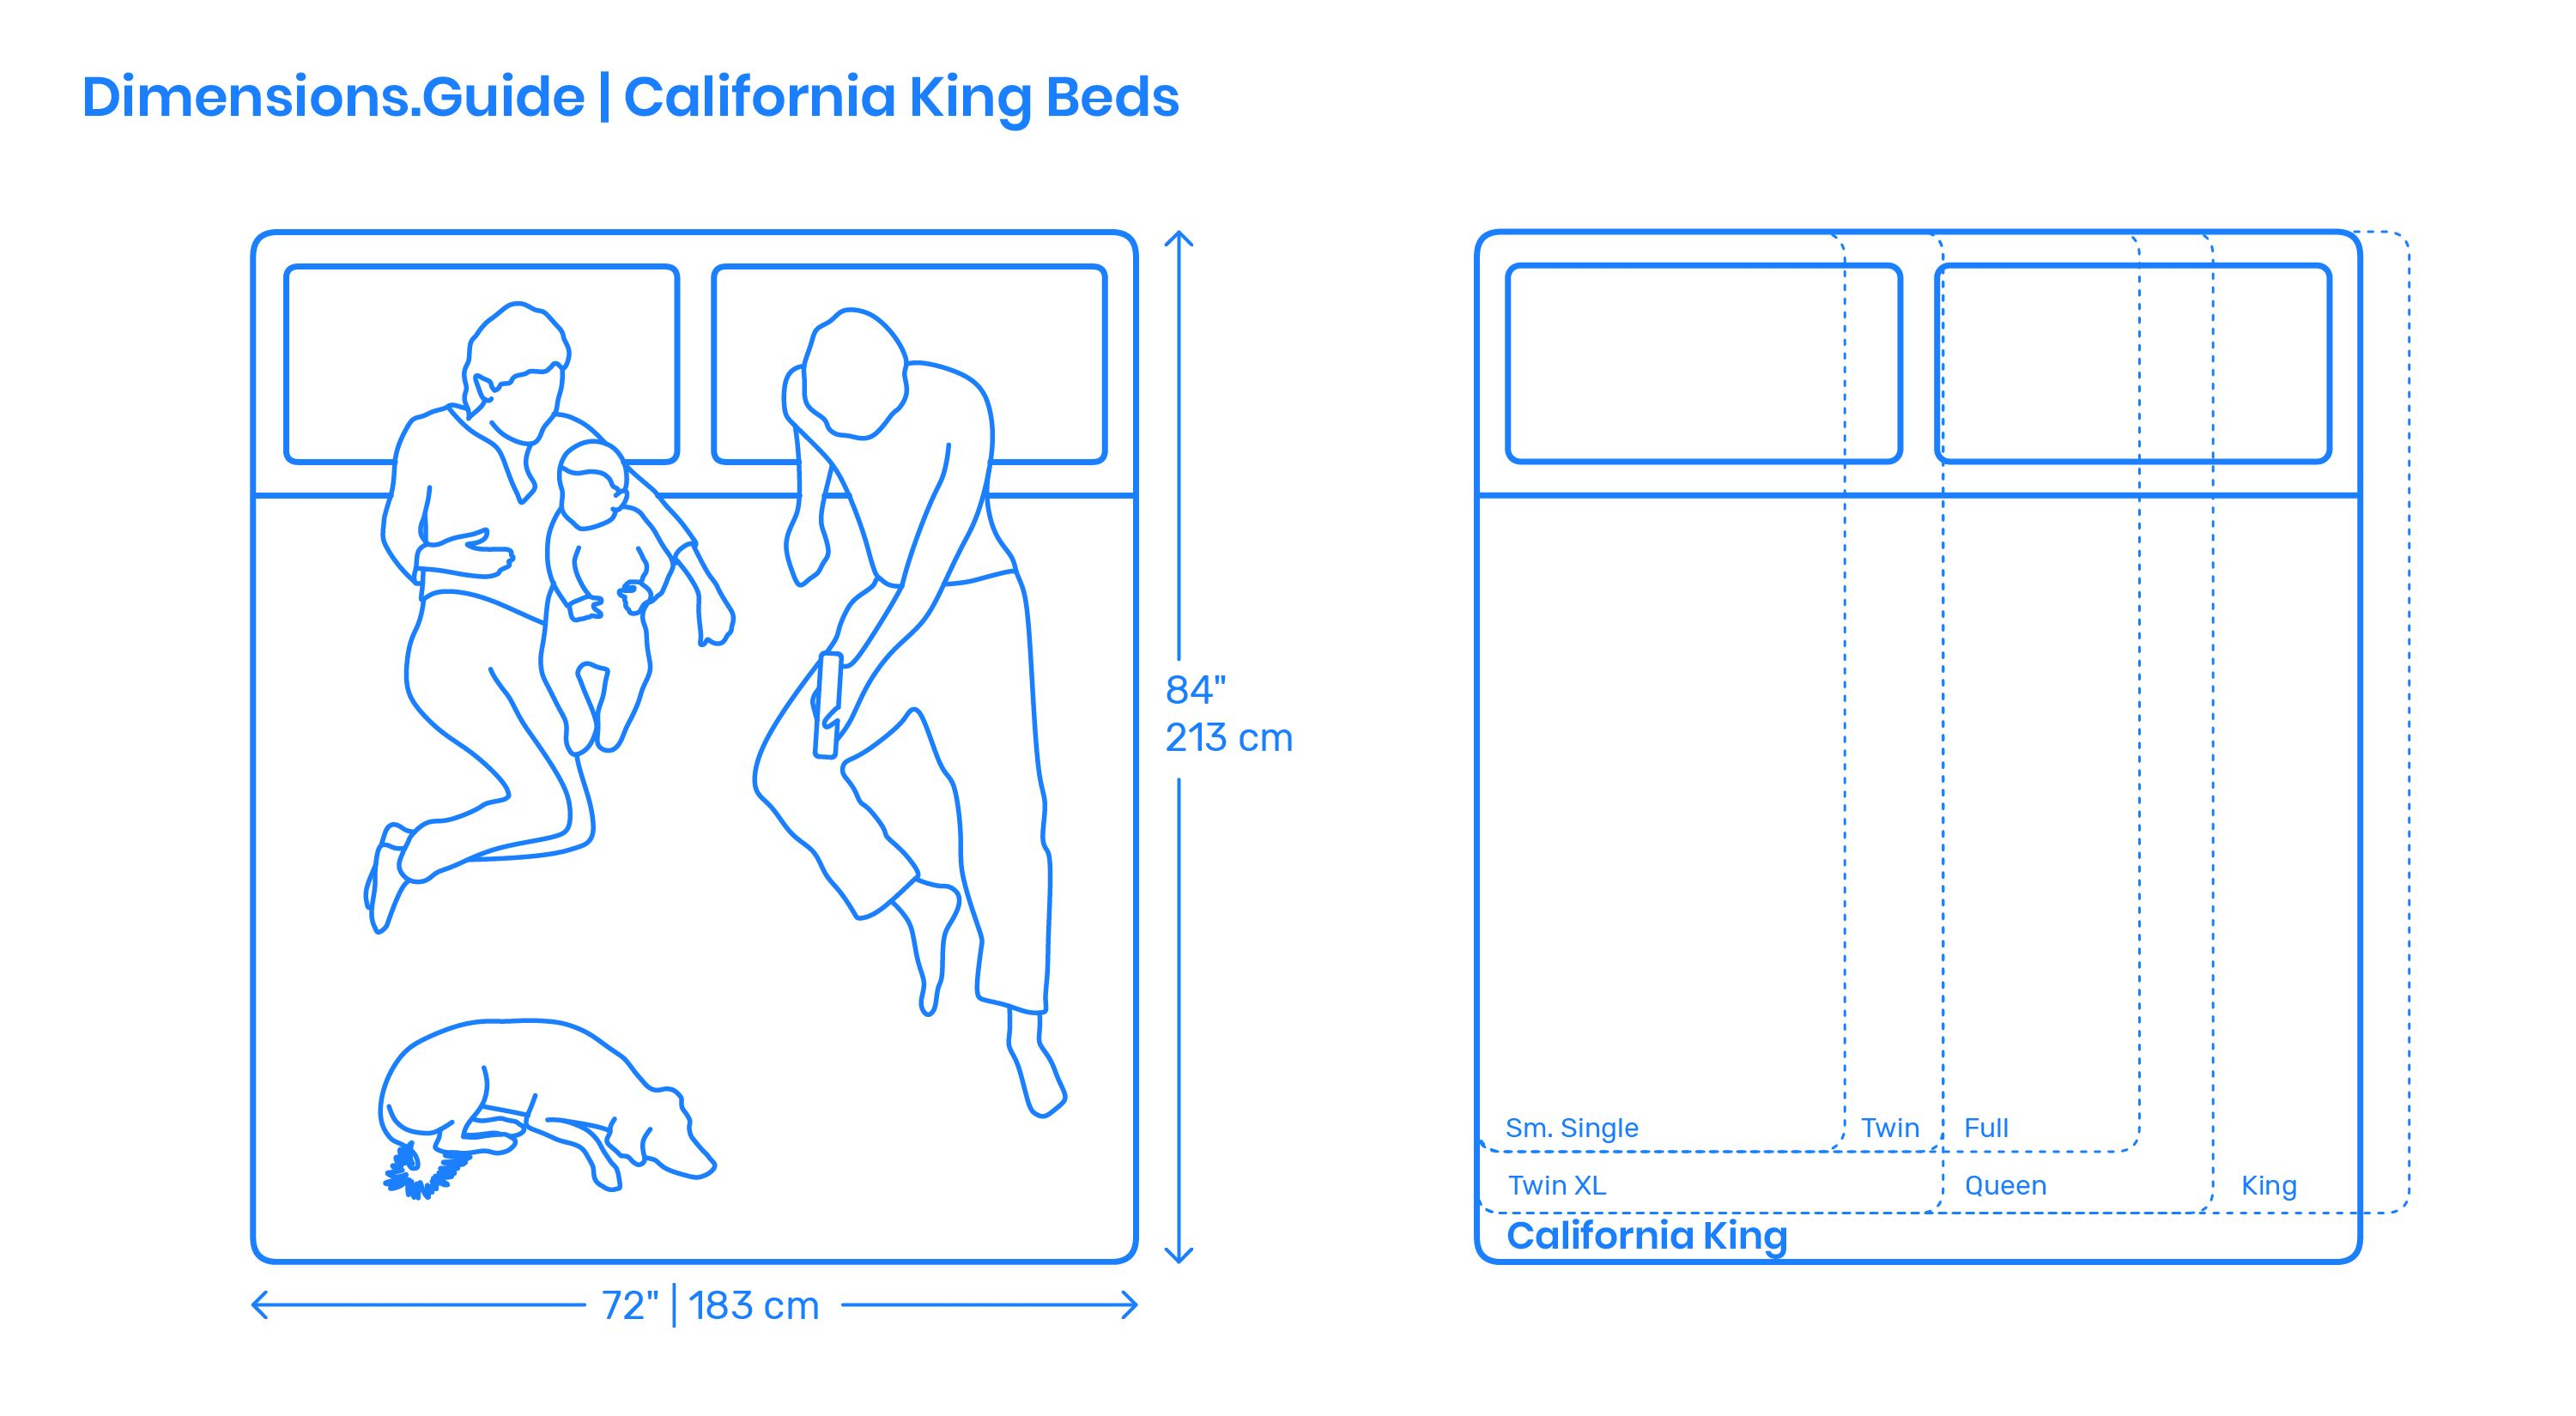 California King beds are variations of King beds designed